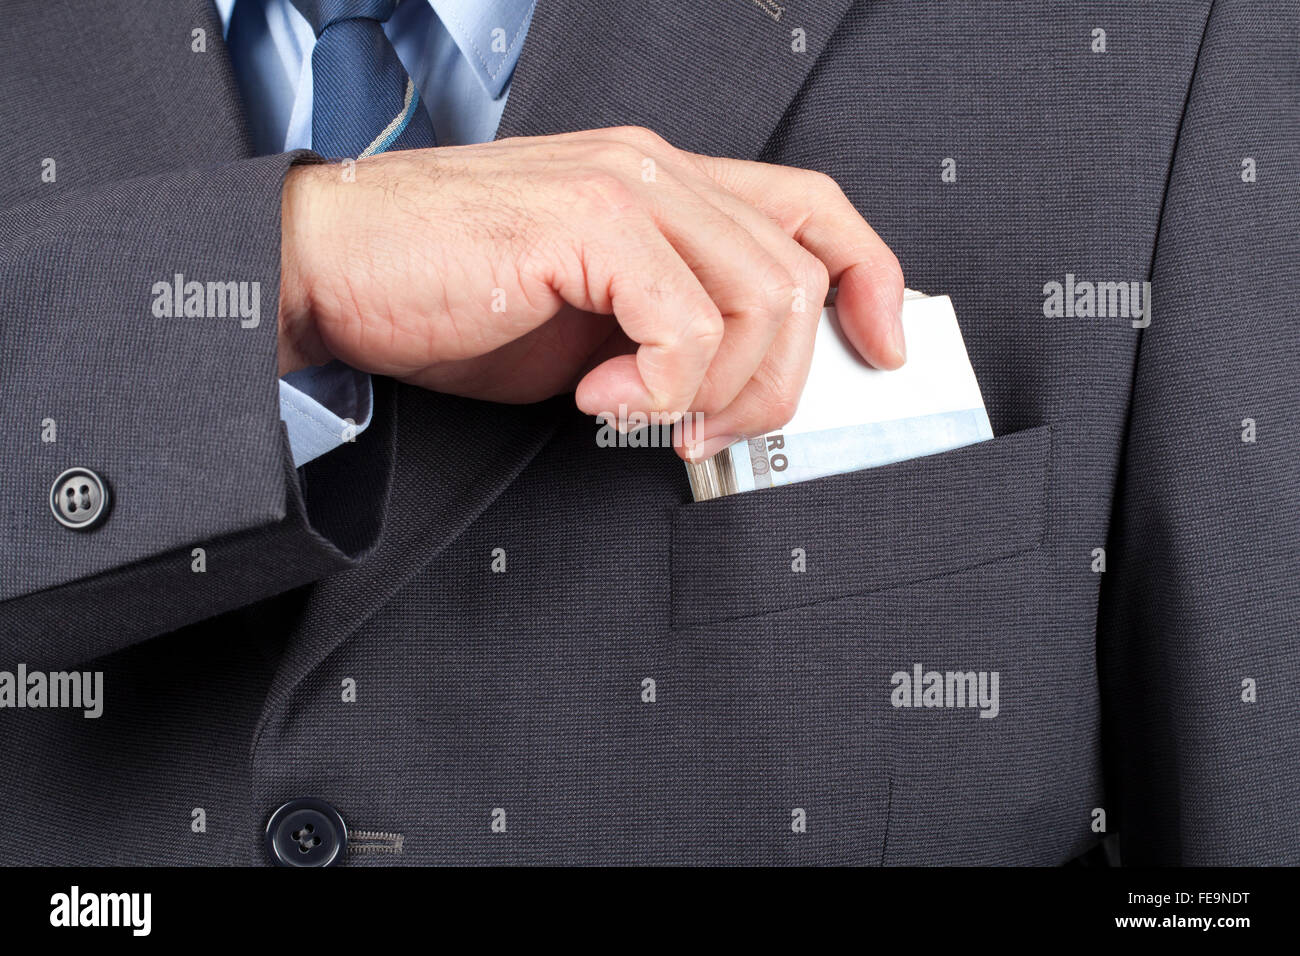 Businessman in suit putting a wad of money in his pocket. - Stock Image